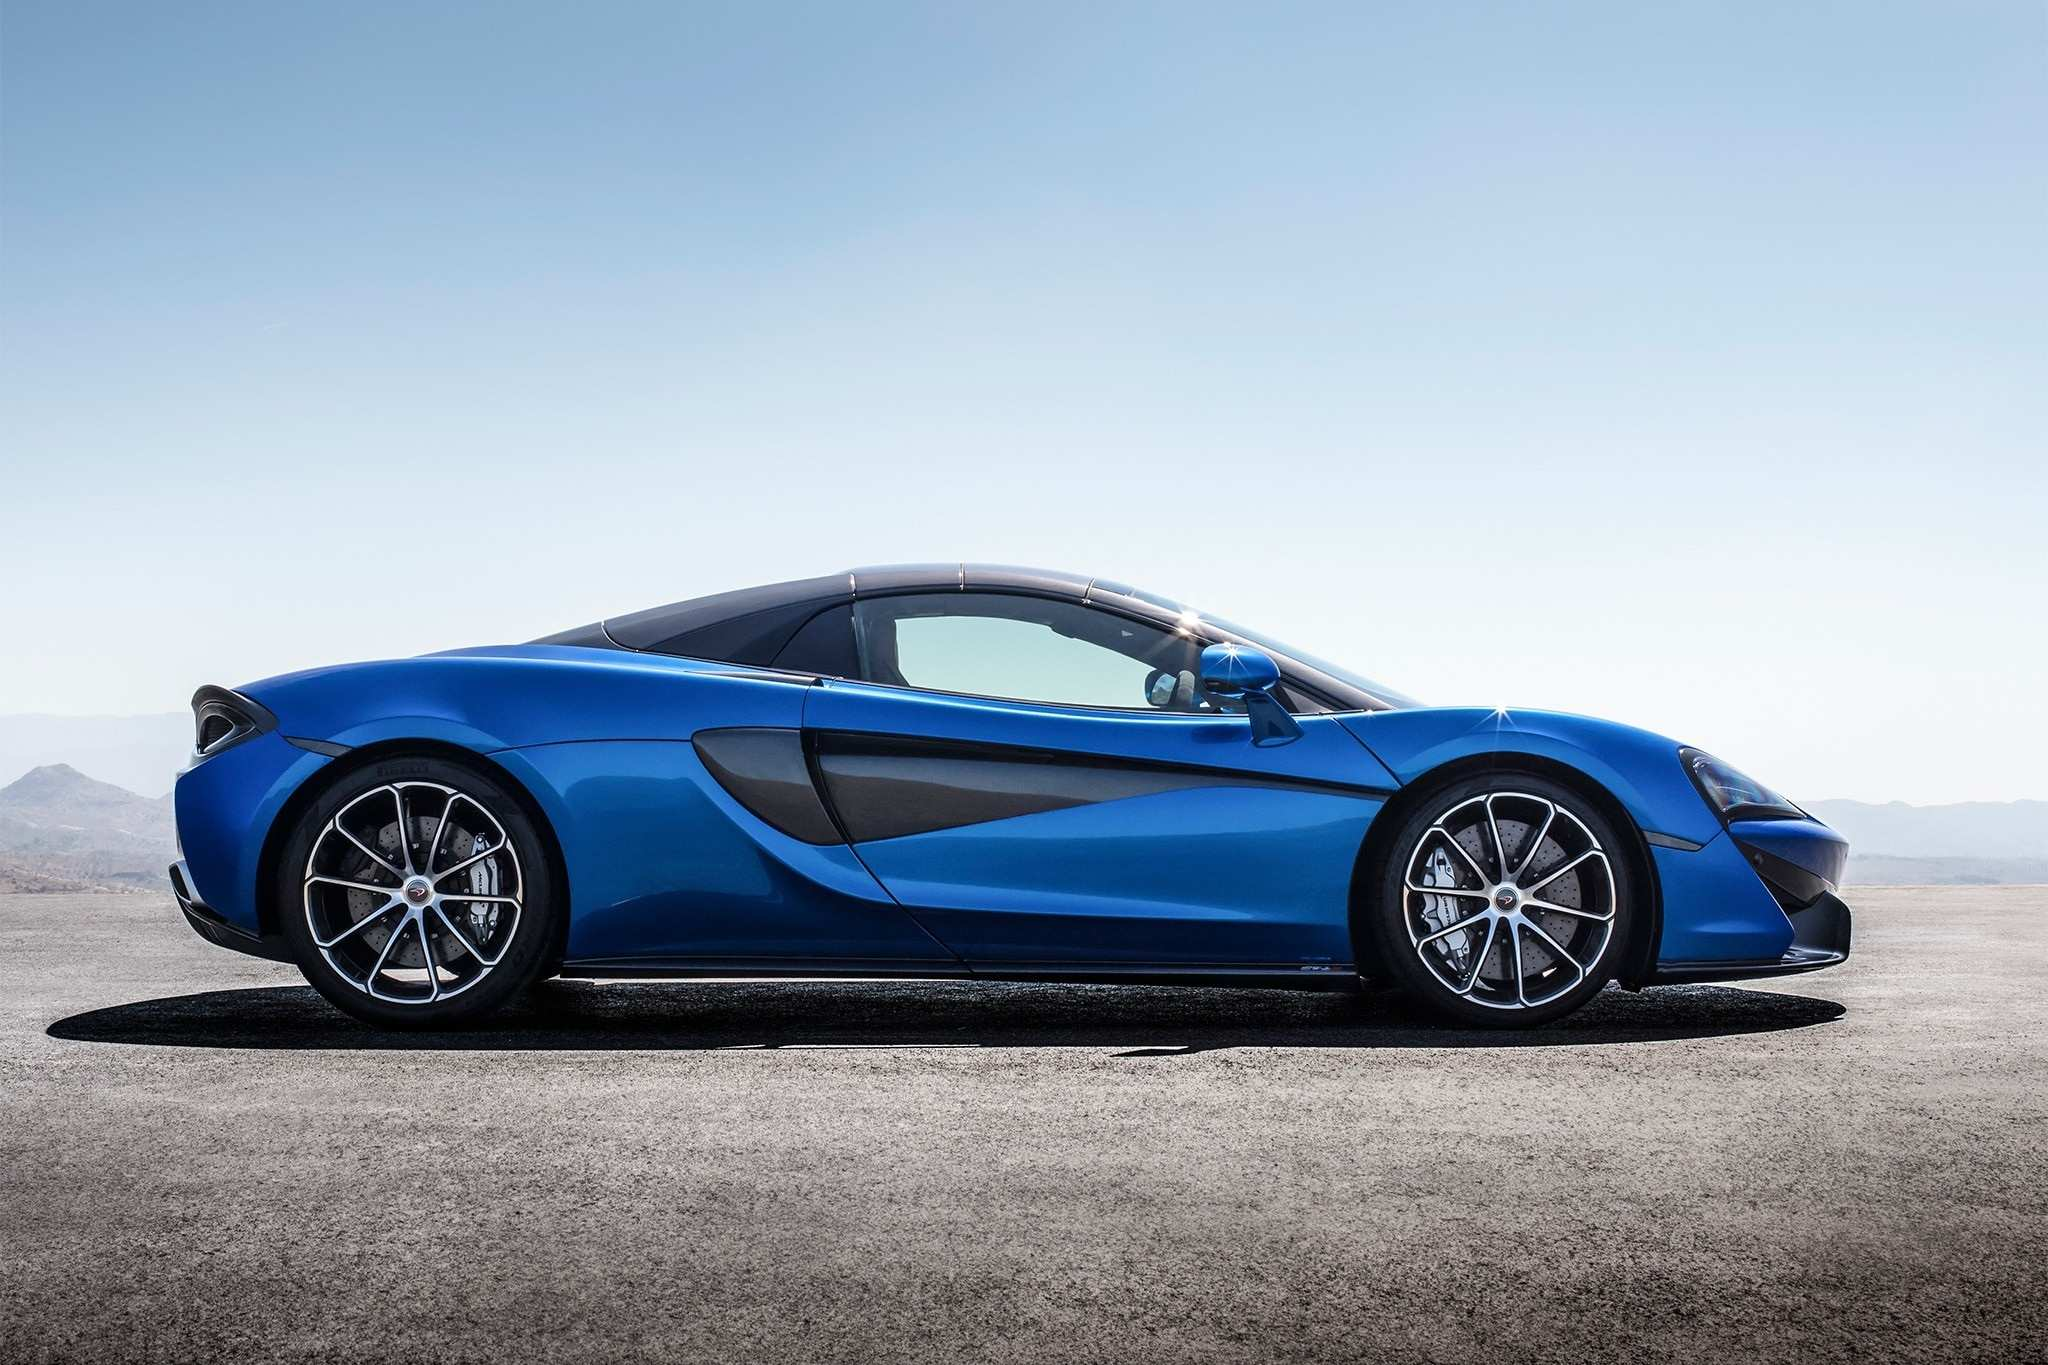 13 Best 2020 Mclaren 570S Price and Review